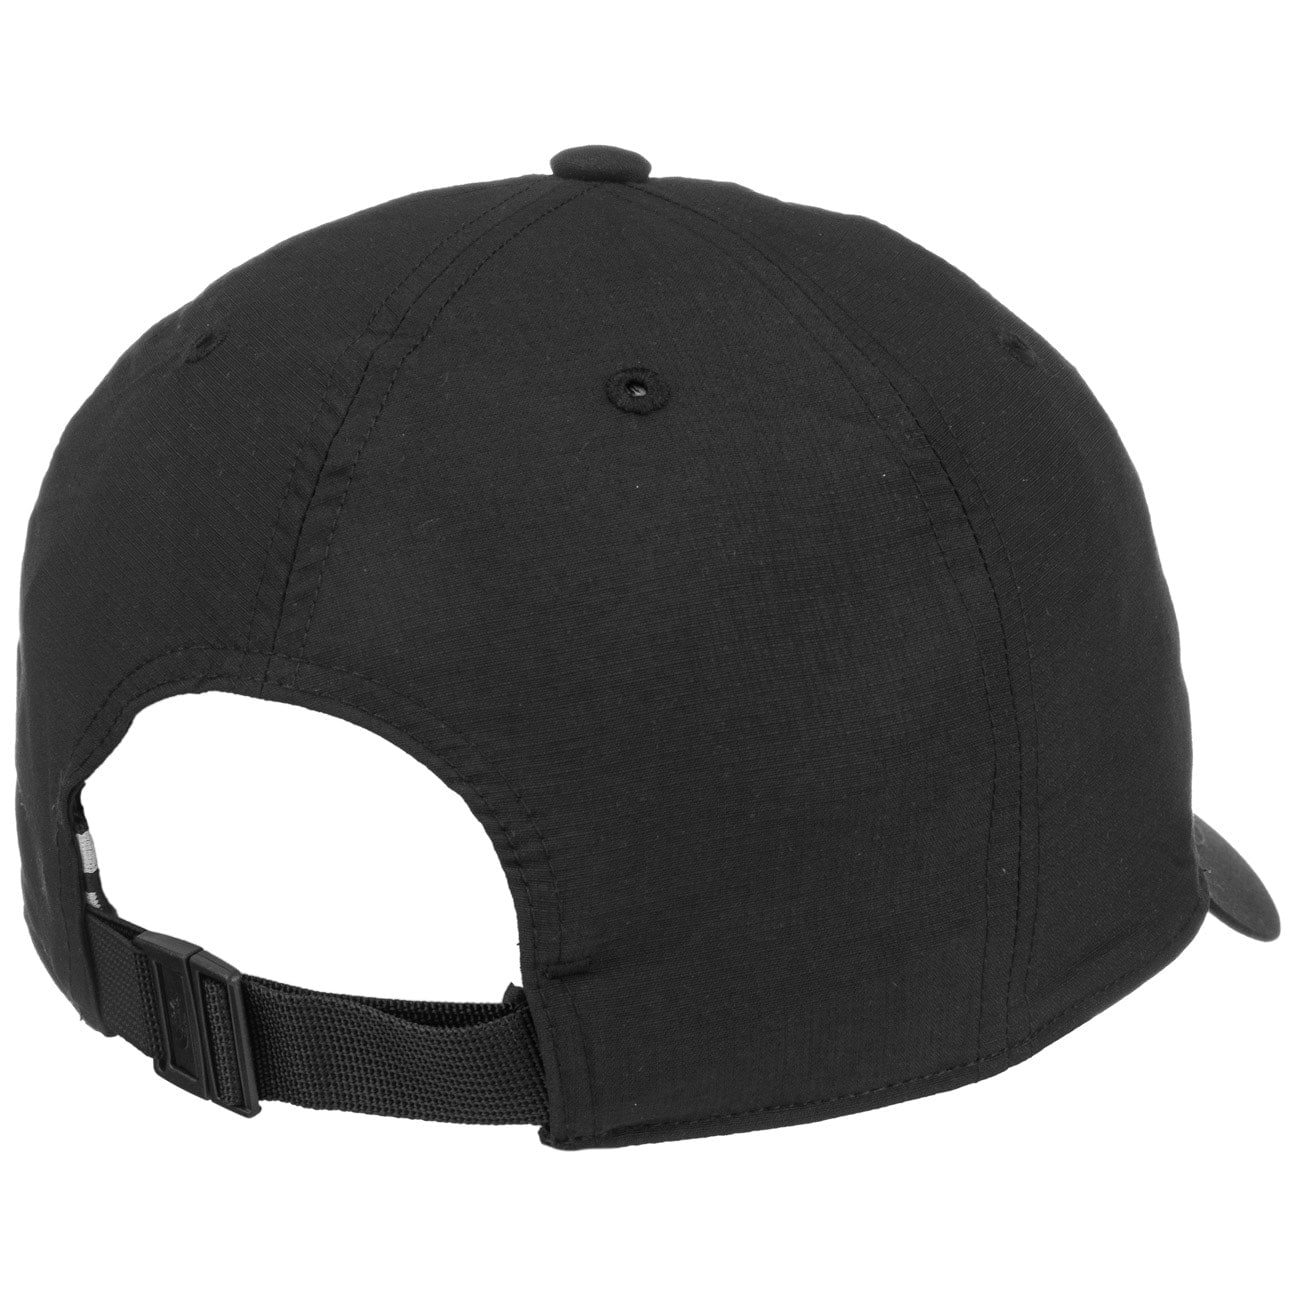 THE NORTH FACE Horizon Cap Basecap Baseballcap Outdoorcap Caps